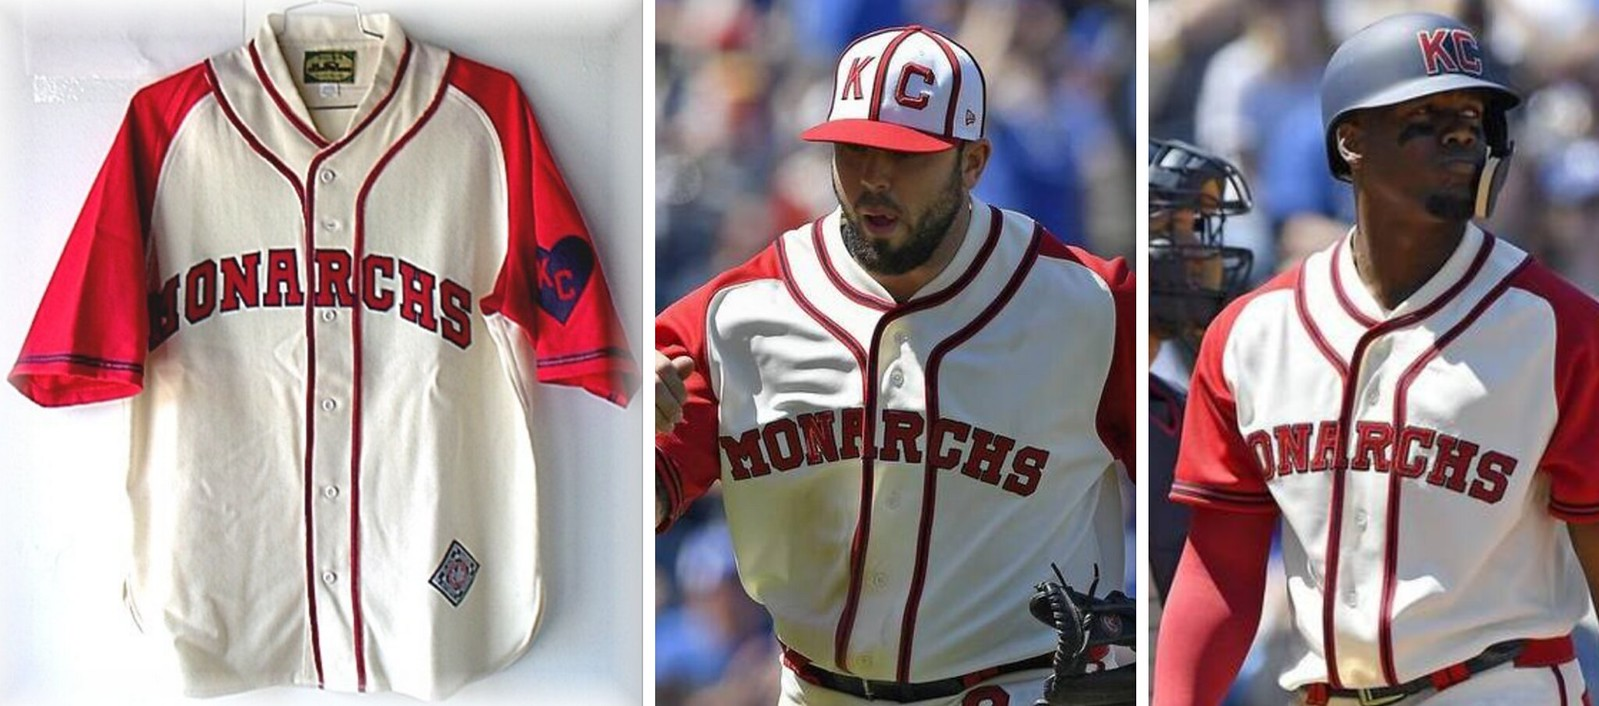 aldo shoes kansas city monarchs uniforms